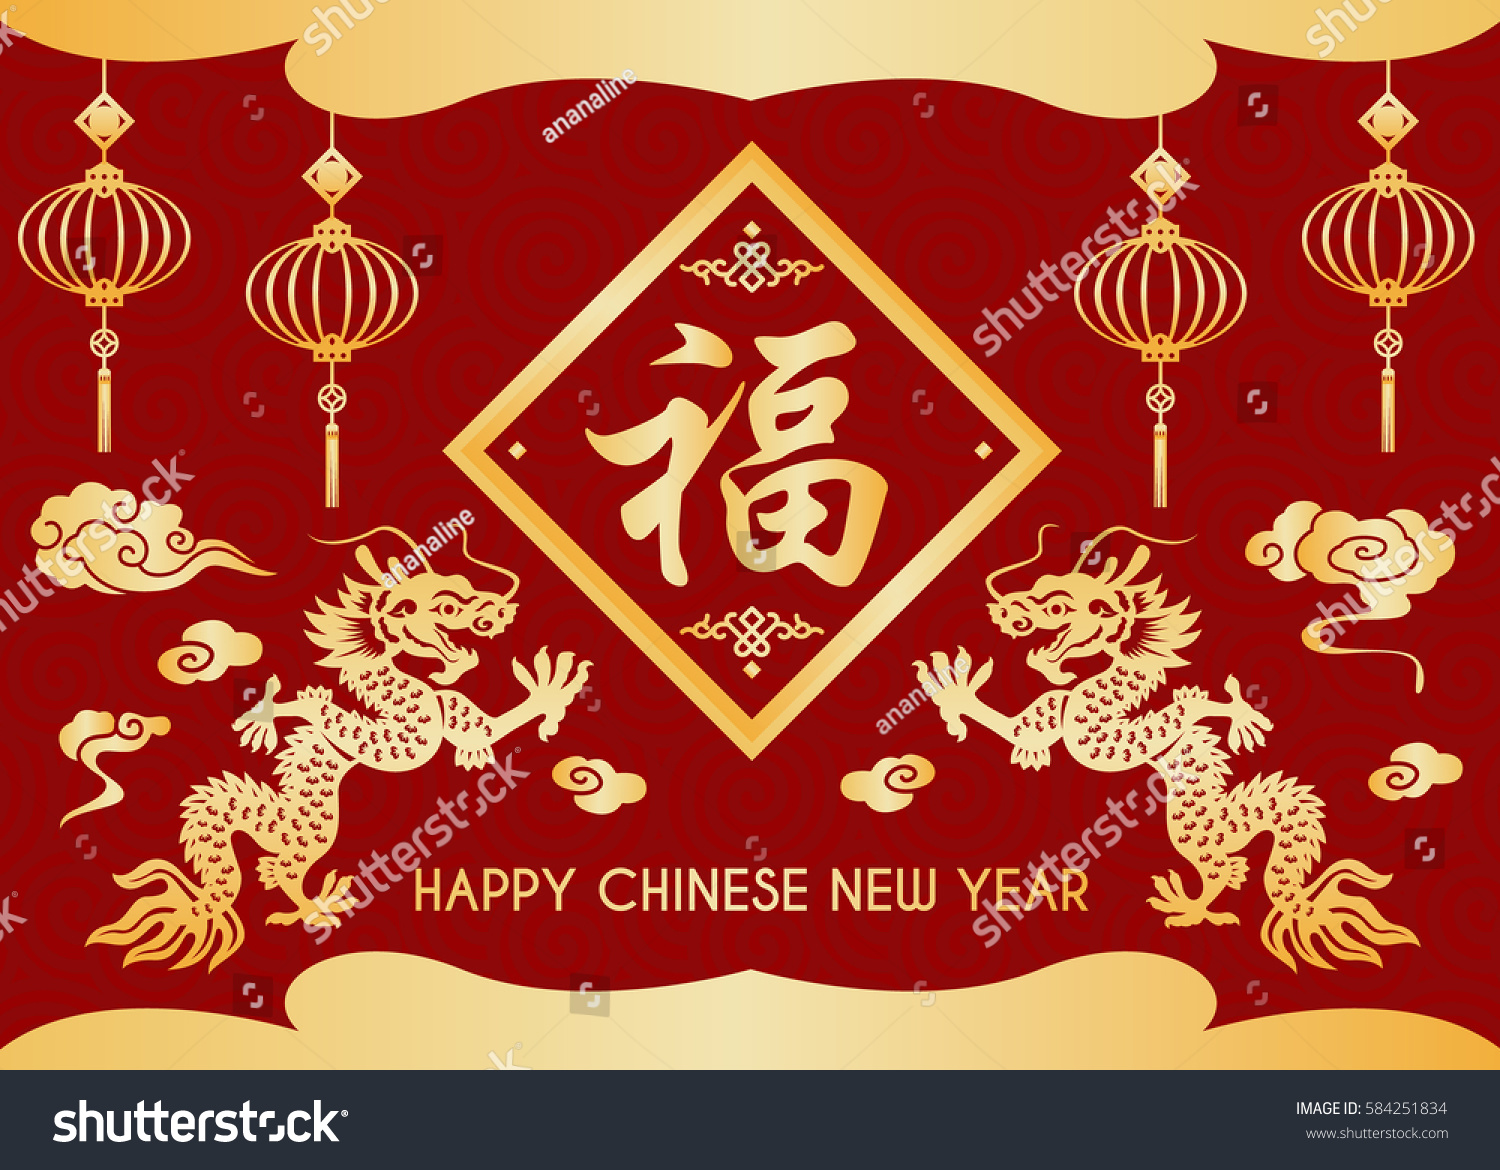 Happy chinese new year card gold stock vector 584251834 shutterstock kristyandbryce Choice Image